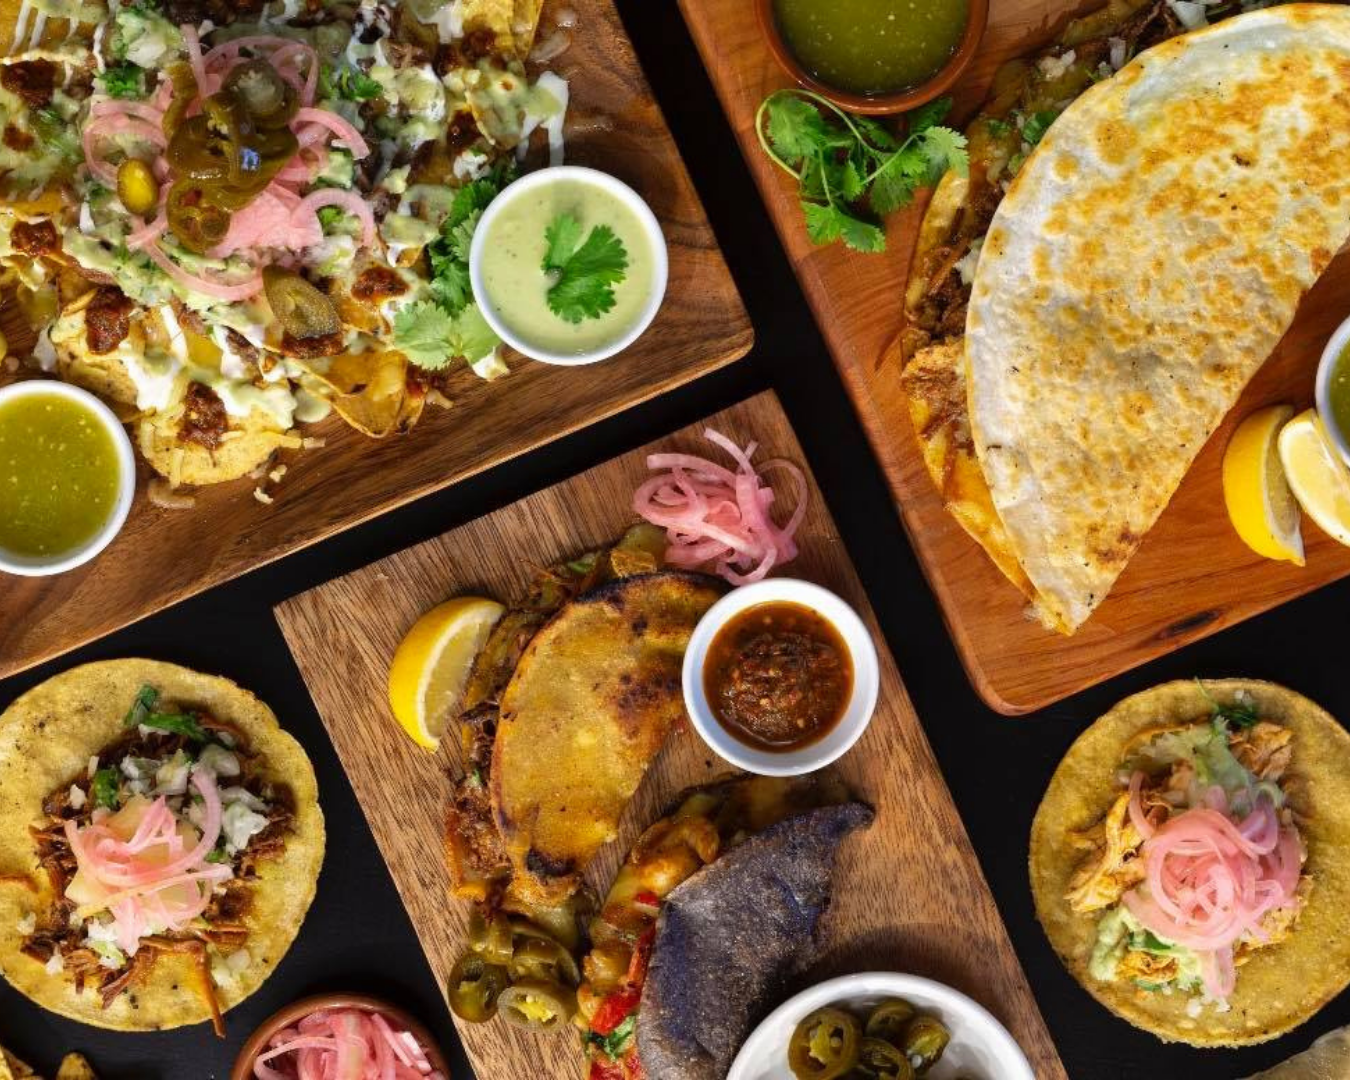 A range of dishes including Birria Tacos, Quesadillas and other tacos along with sauces and sides